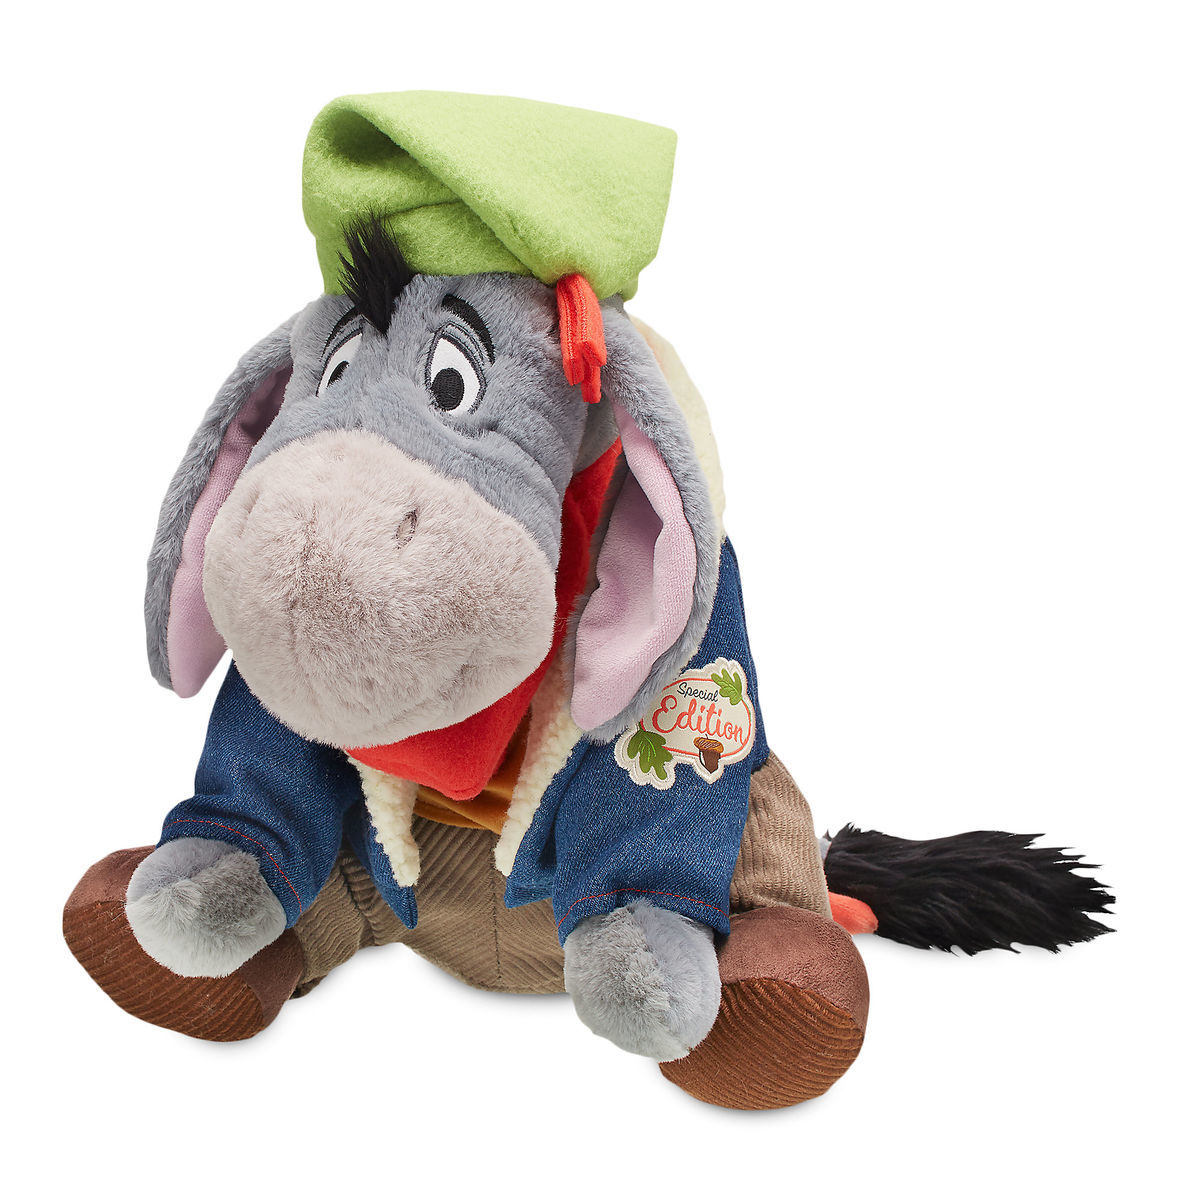 Disney Holiday Plush - Eeyore Special Edition - Medium